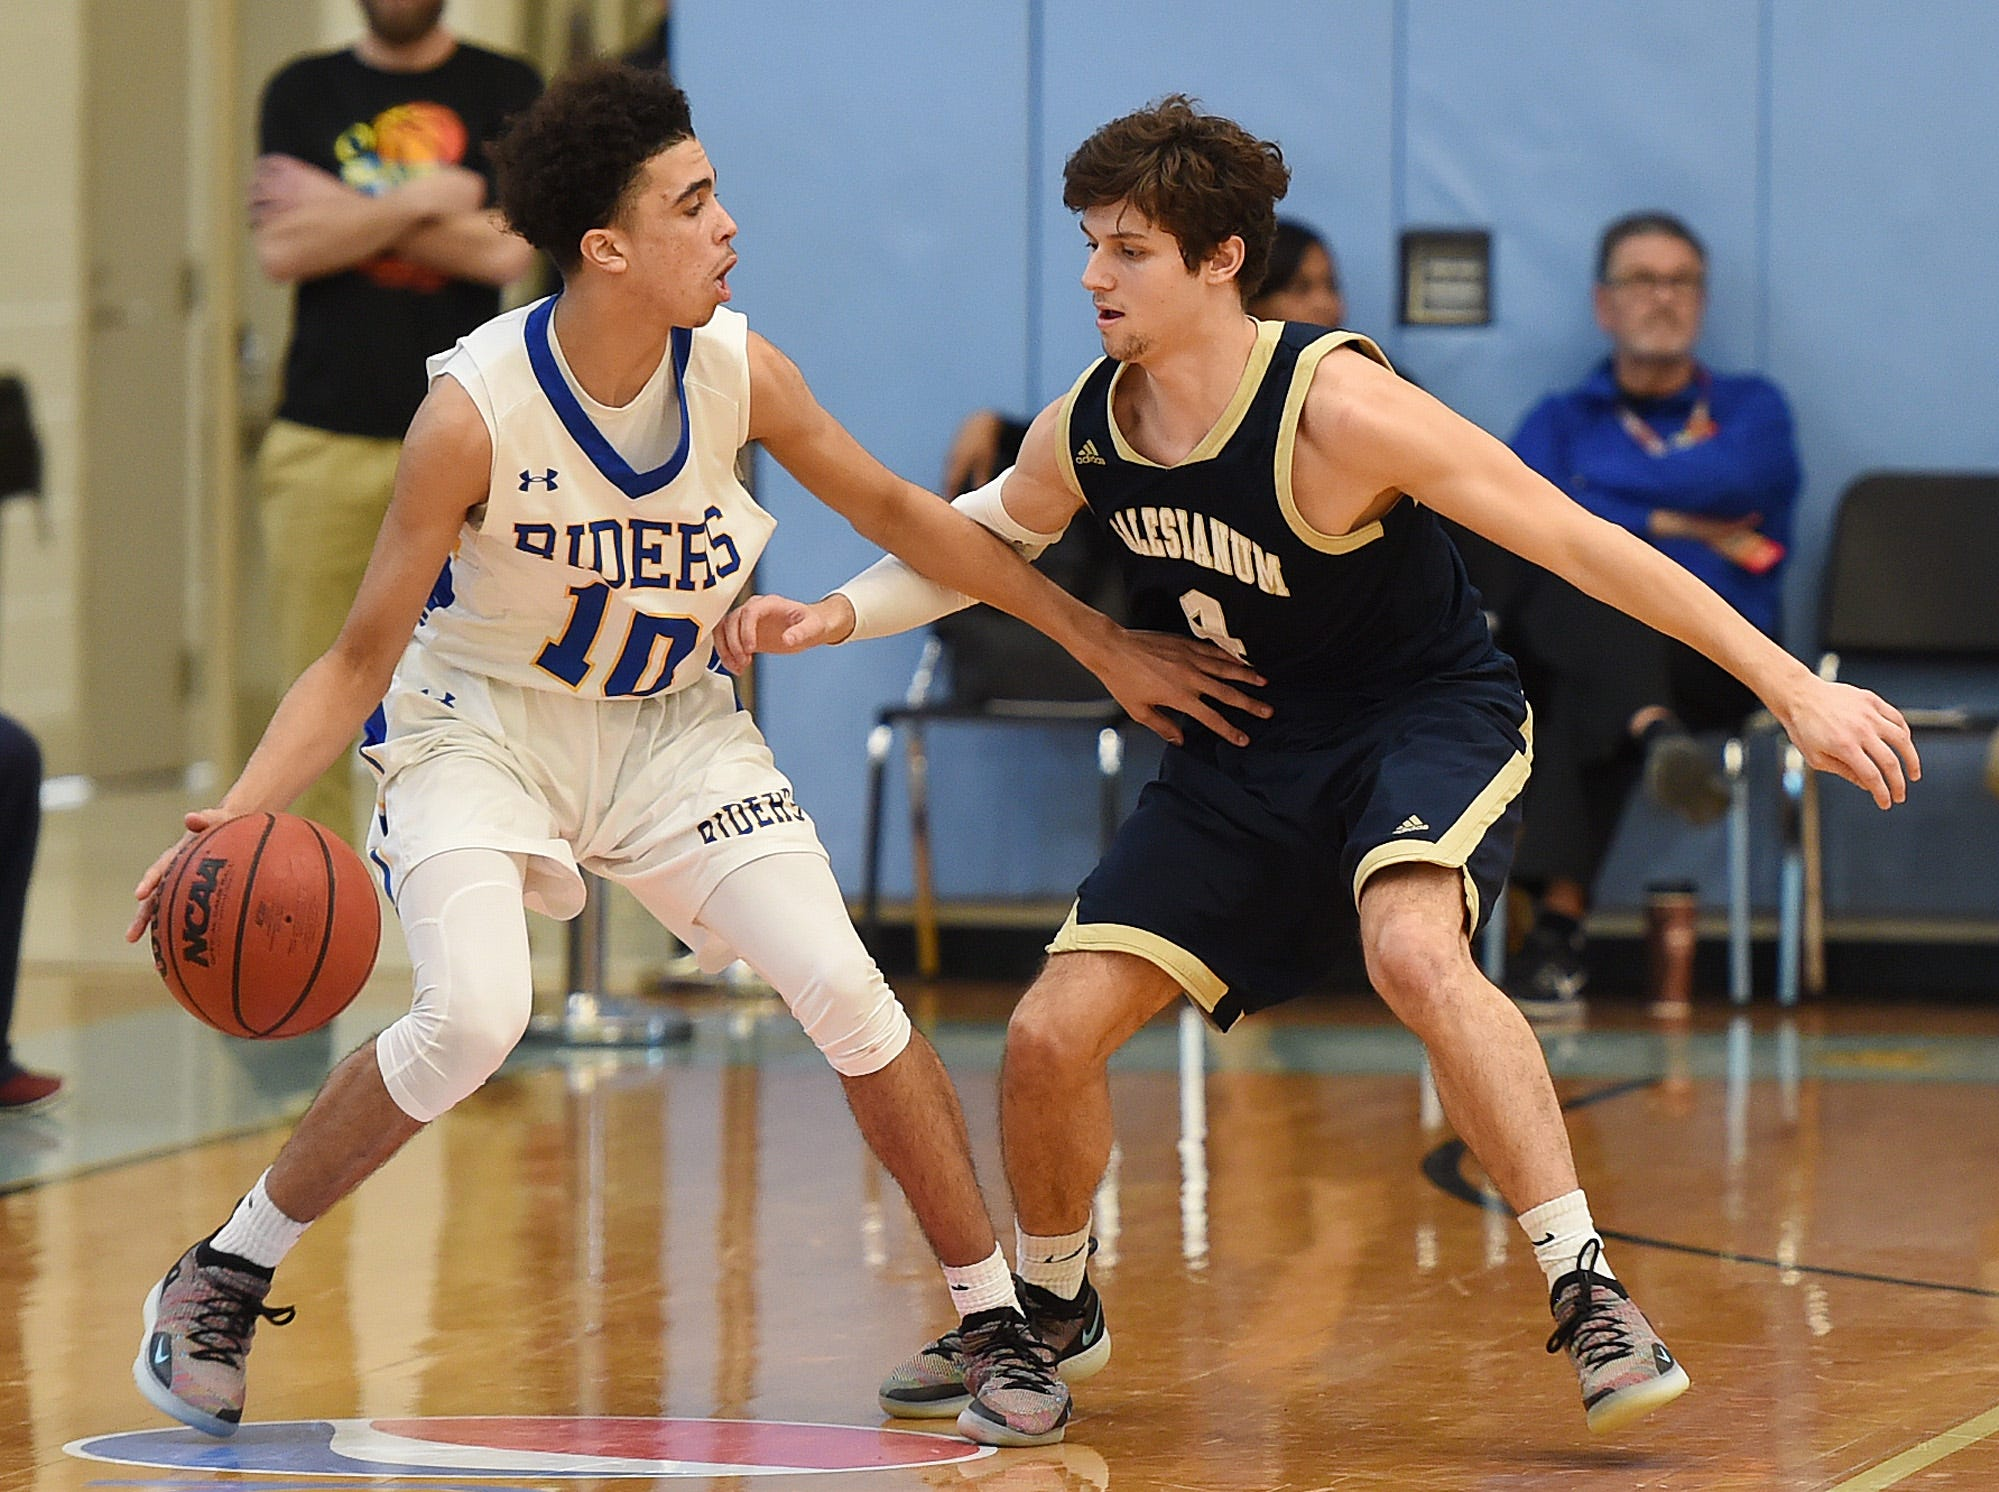 CR's #10 Kamal Marvel moves the ball past Sallies #4 Max Ferrante as Slam Dunk to the Beach kicked off on Thursday December 27th with the opening game of Caesar Rodney playing Salesianum at the tournament held at Cape Henlopen High School.